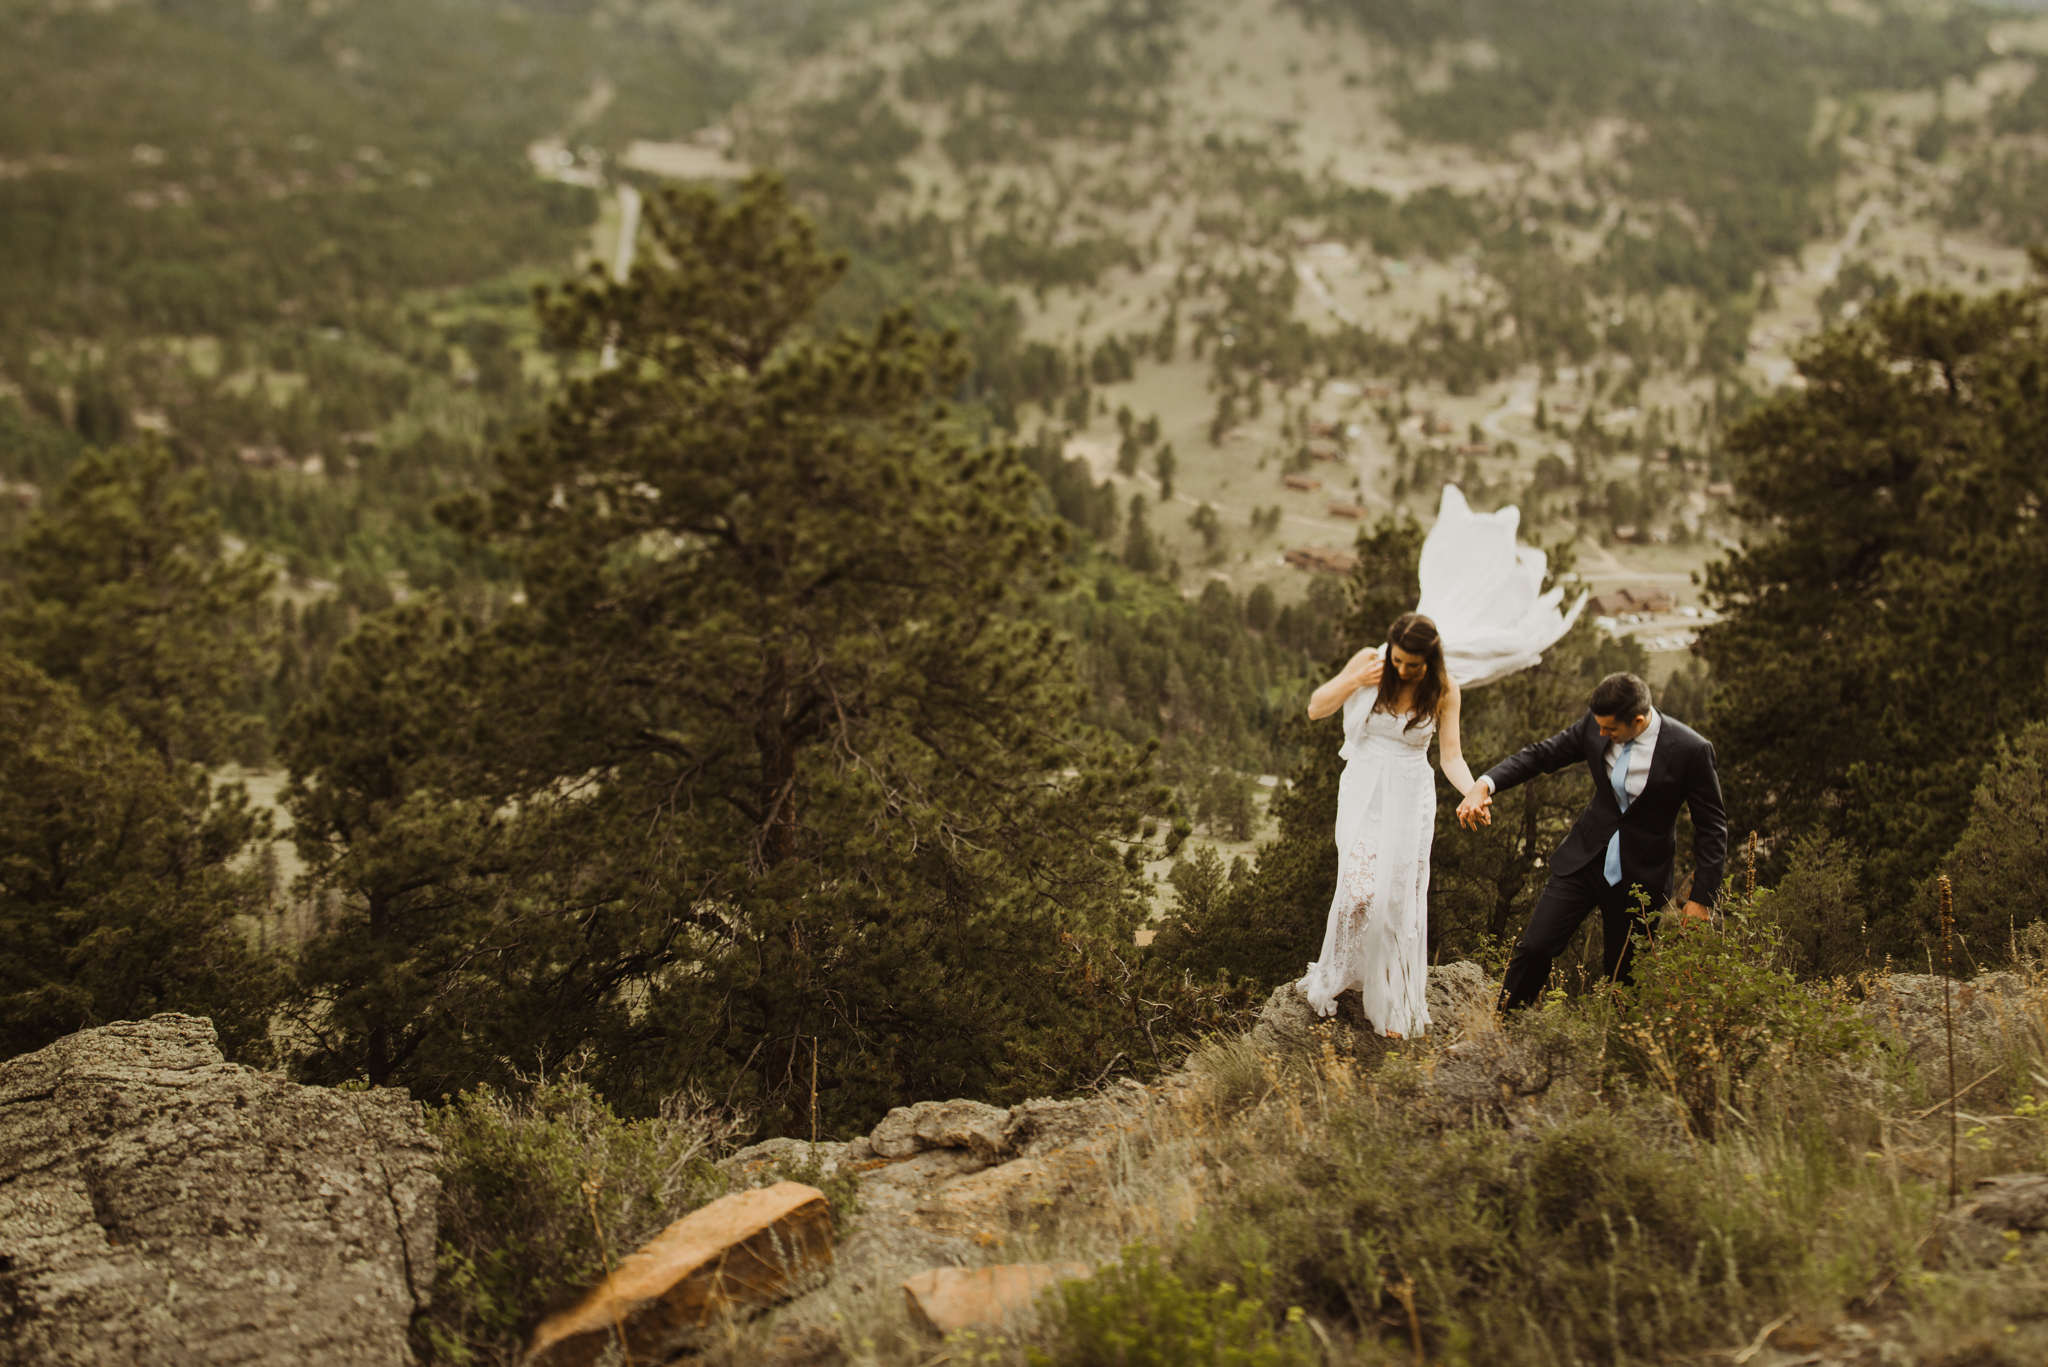 ©Isaiah + Taylor Photography - Estes National Park Adventure Elopement, Colorado Rockies-108.jpg